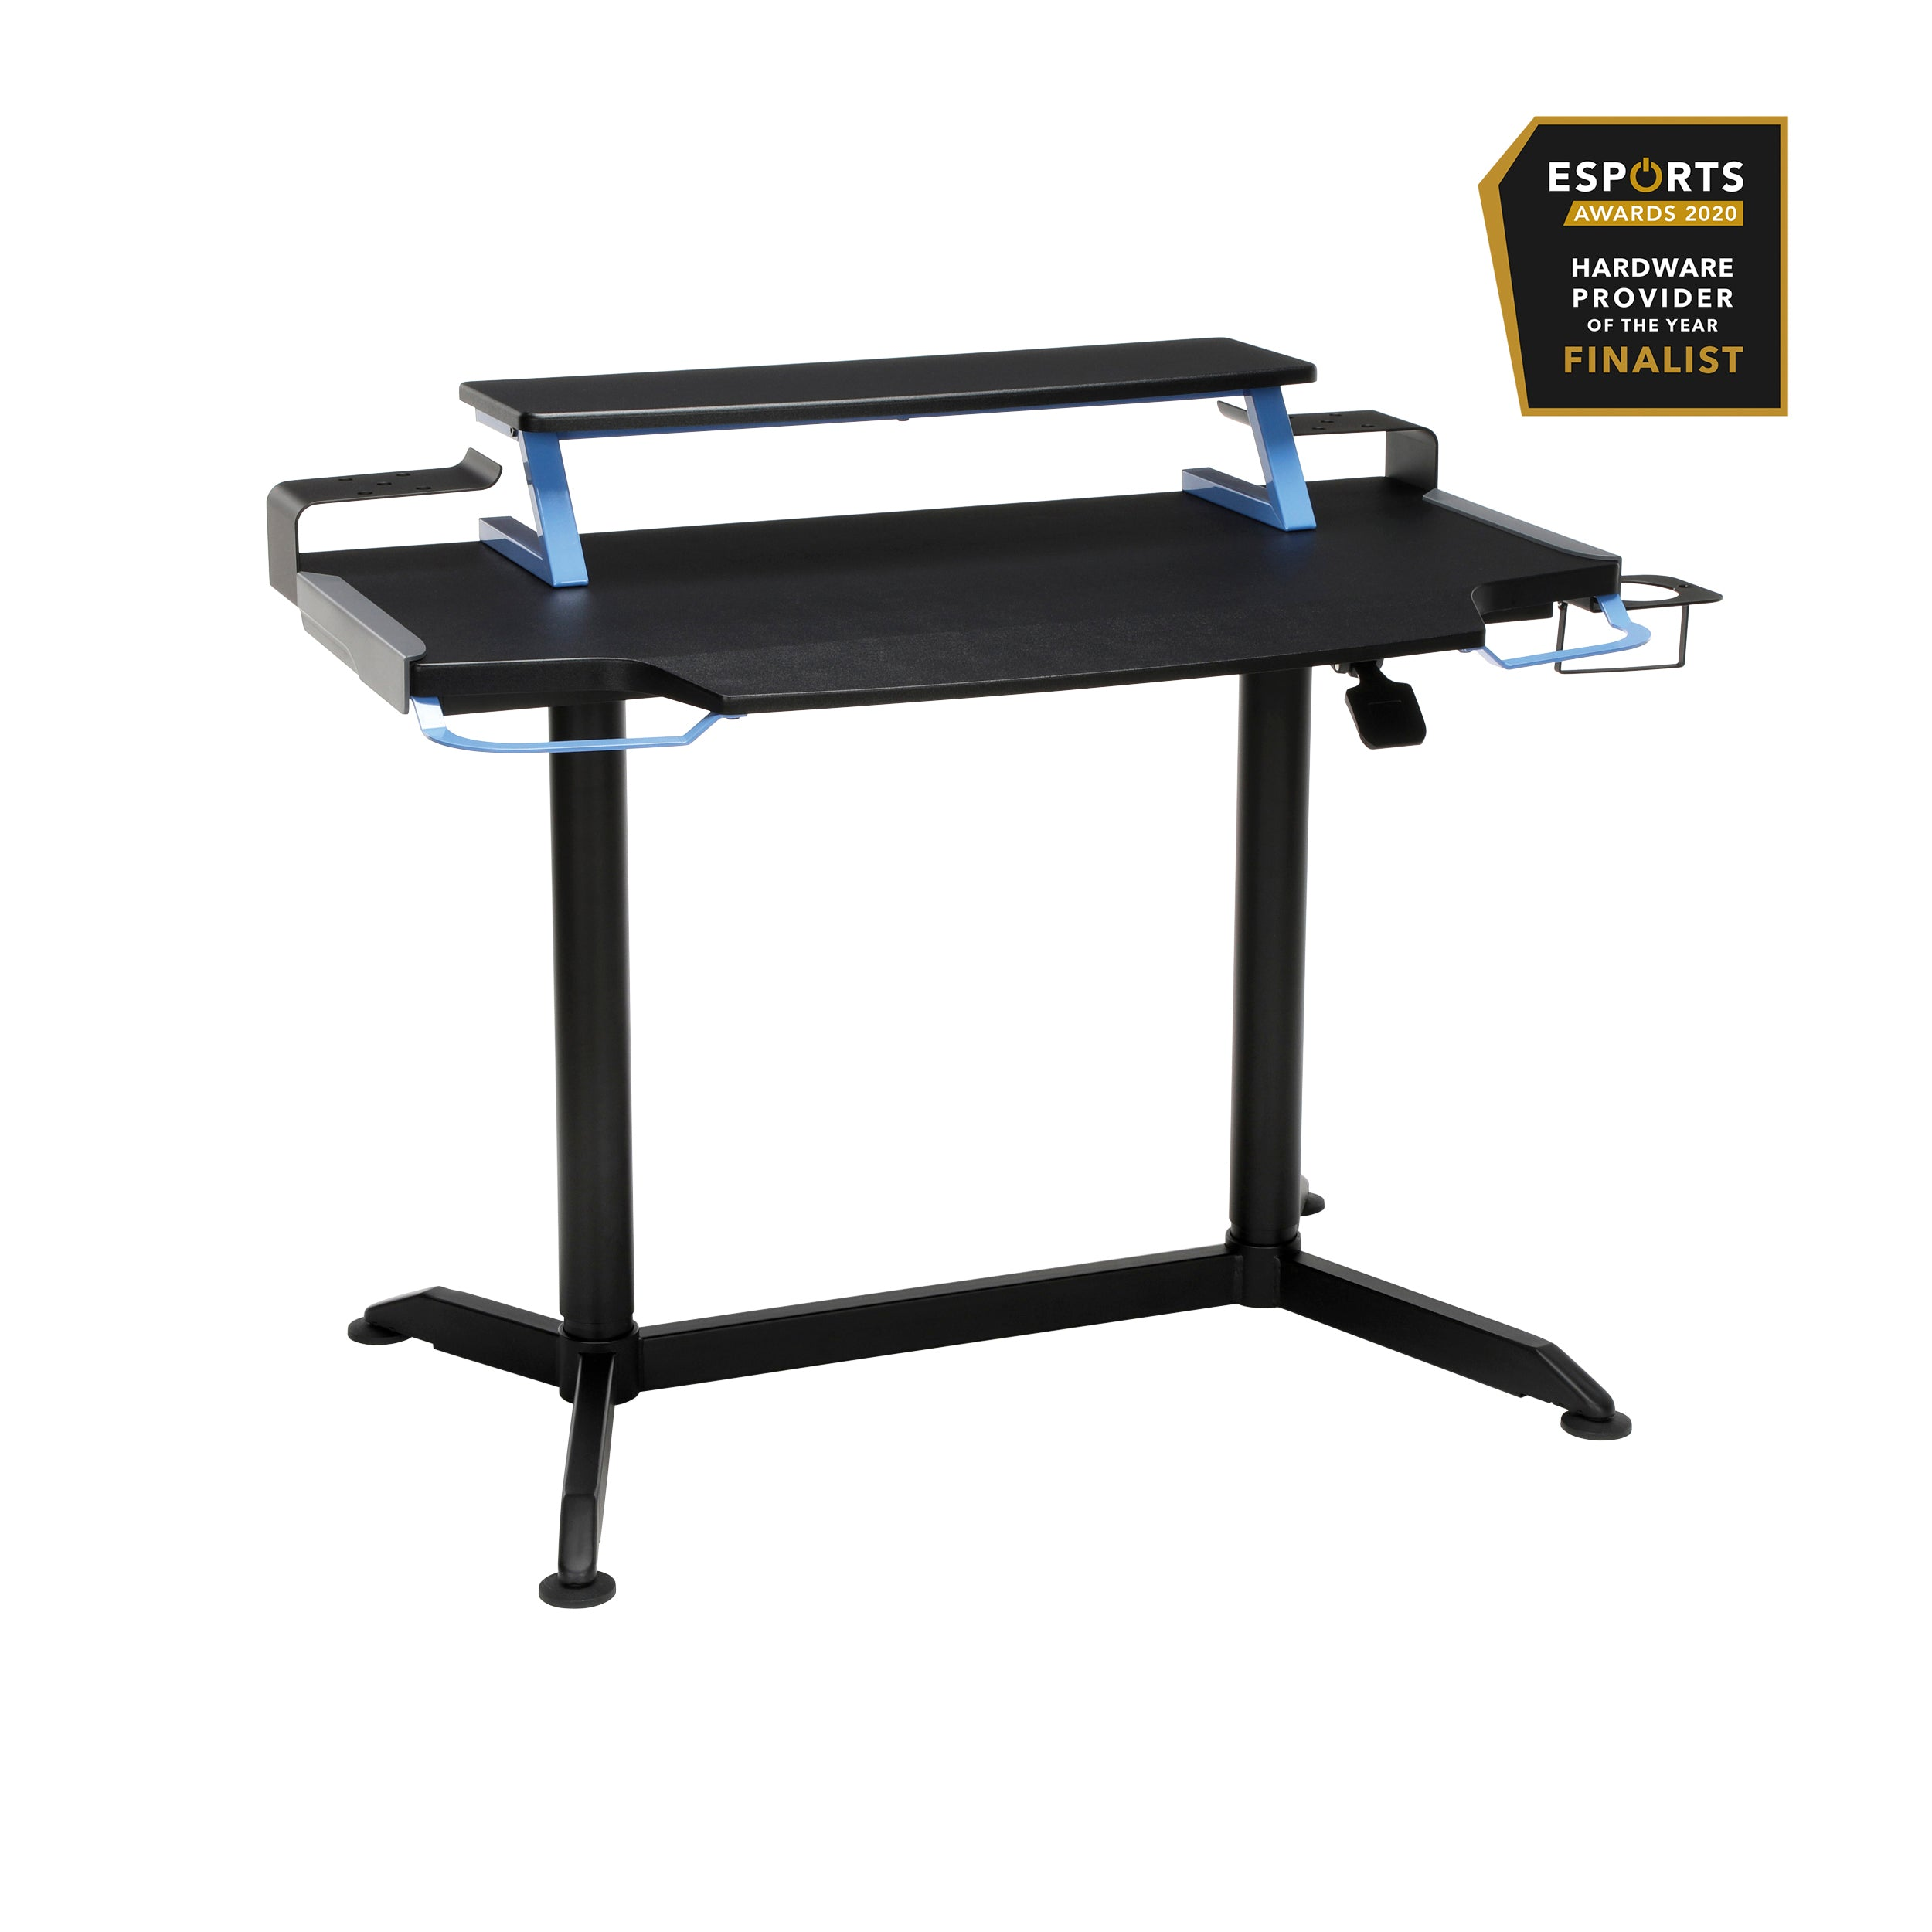 3000 Gaming Computer Desk-Ergonomic Height Adjustable Gaming Desk